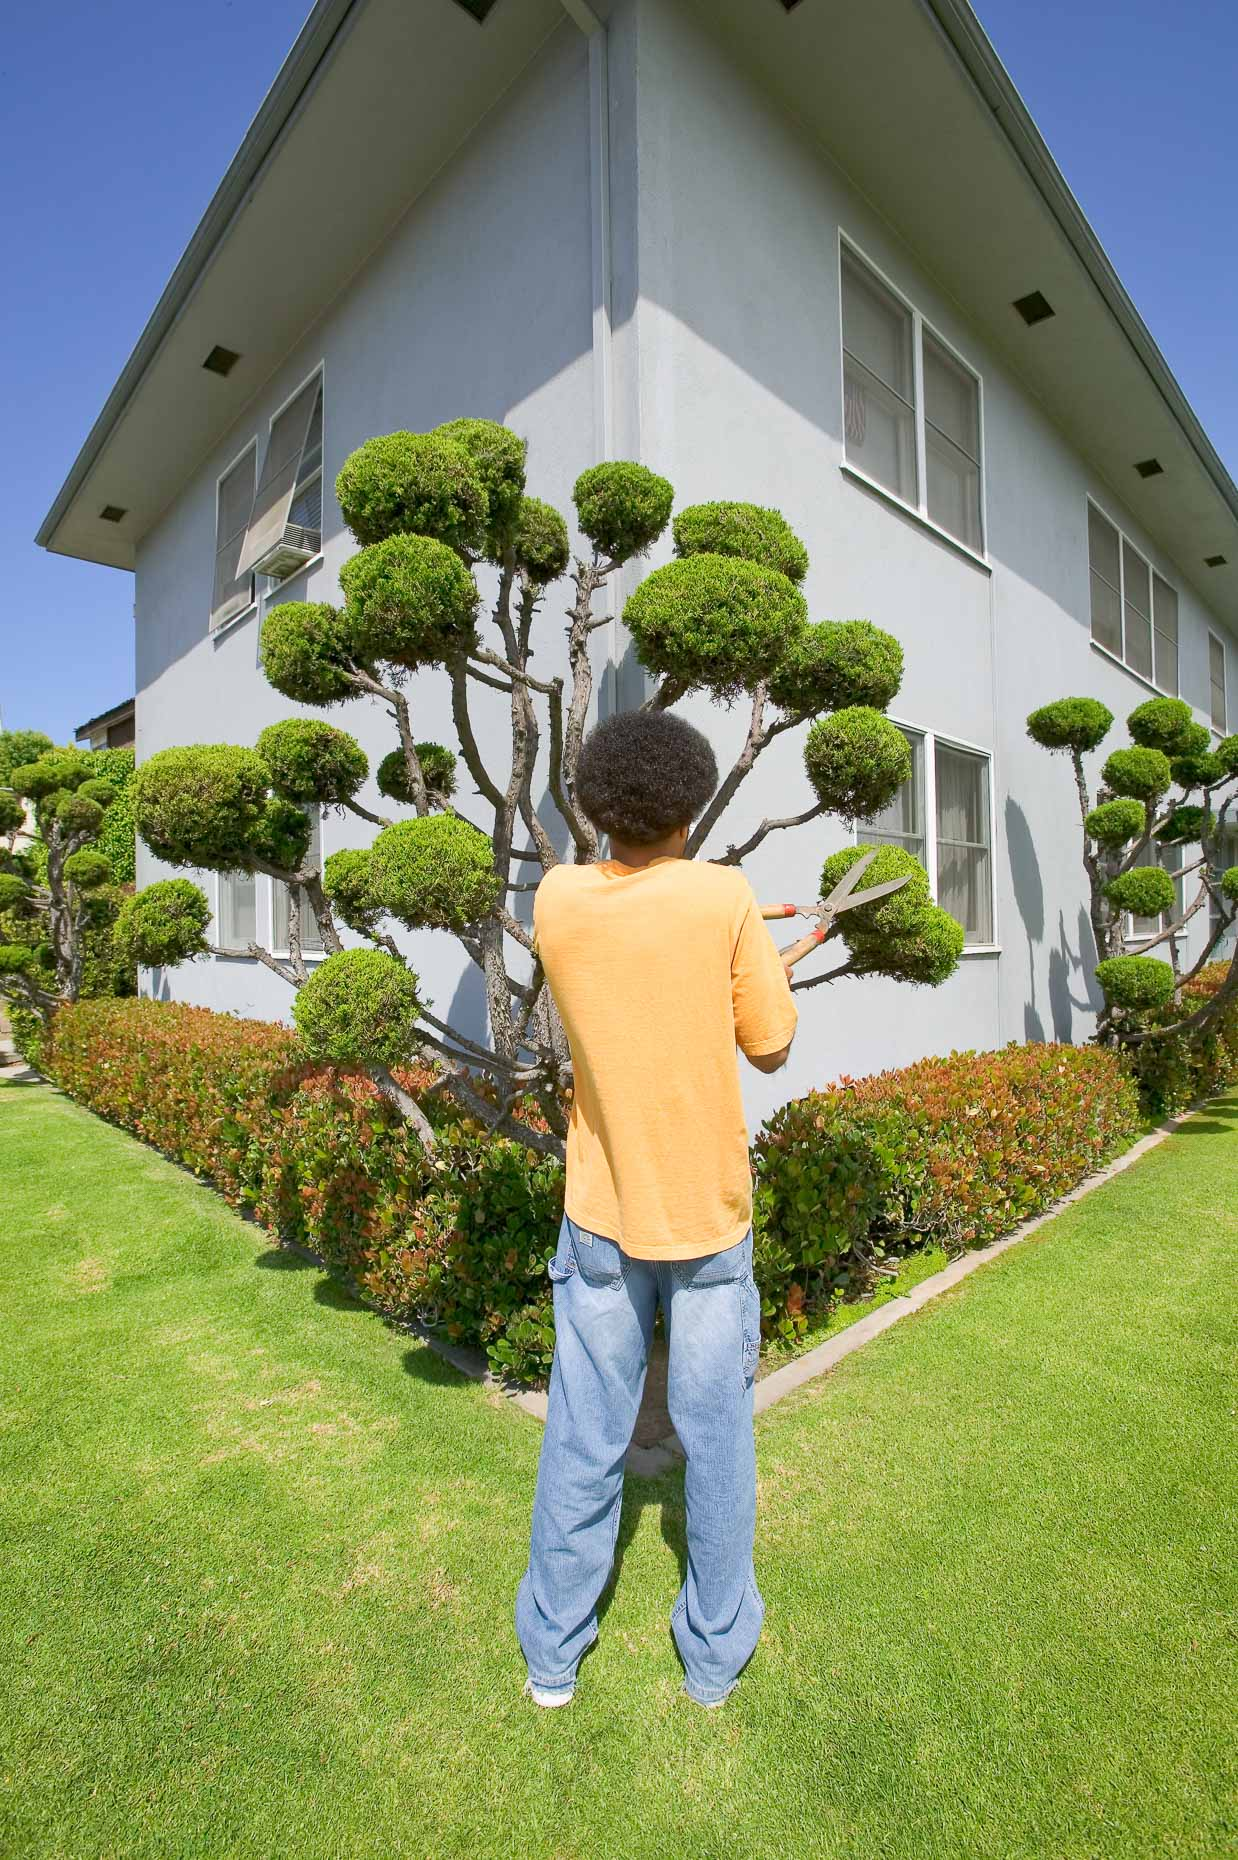 African American man with afro hair trims topiary in shape of his hair by David Zaitz.